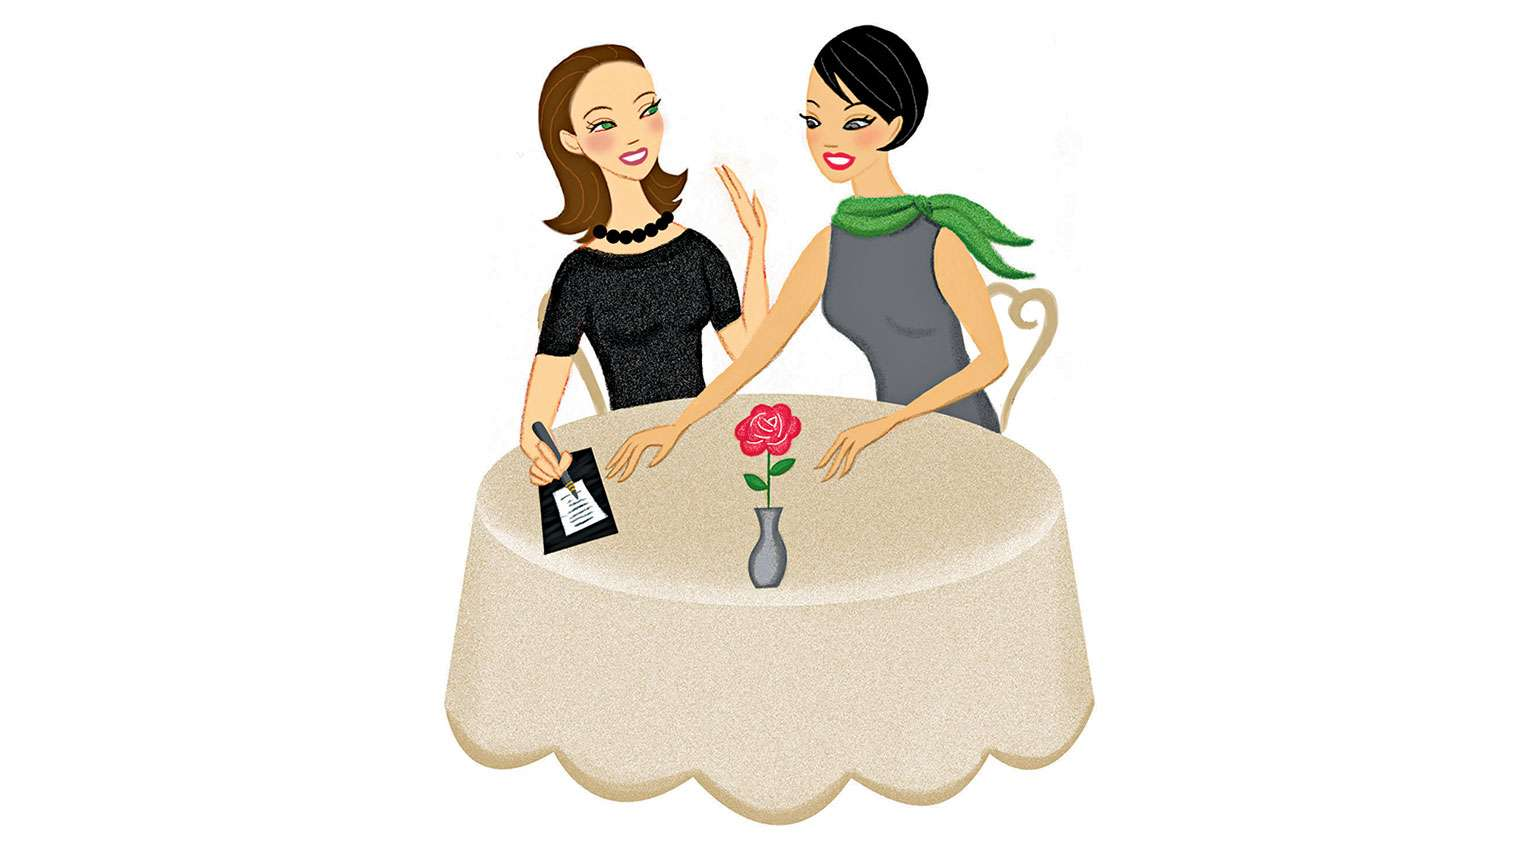 An artist's rendering of two women out for dinner